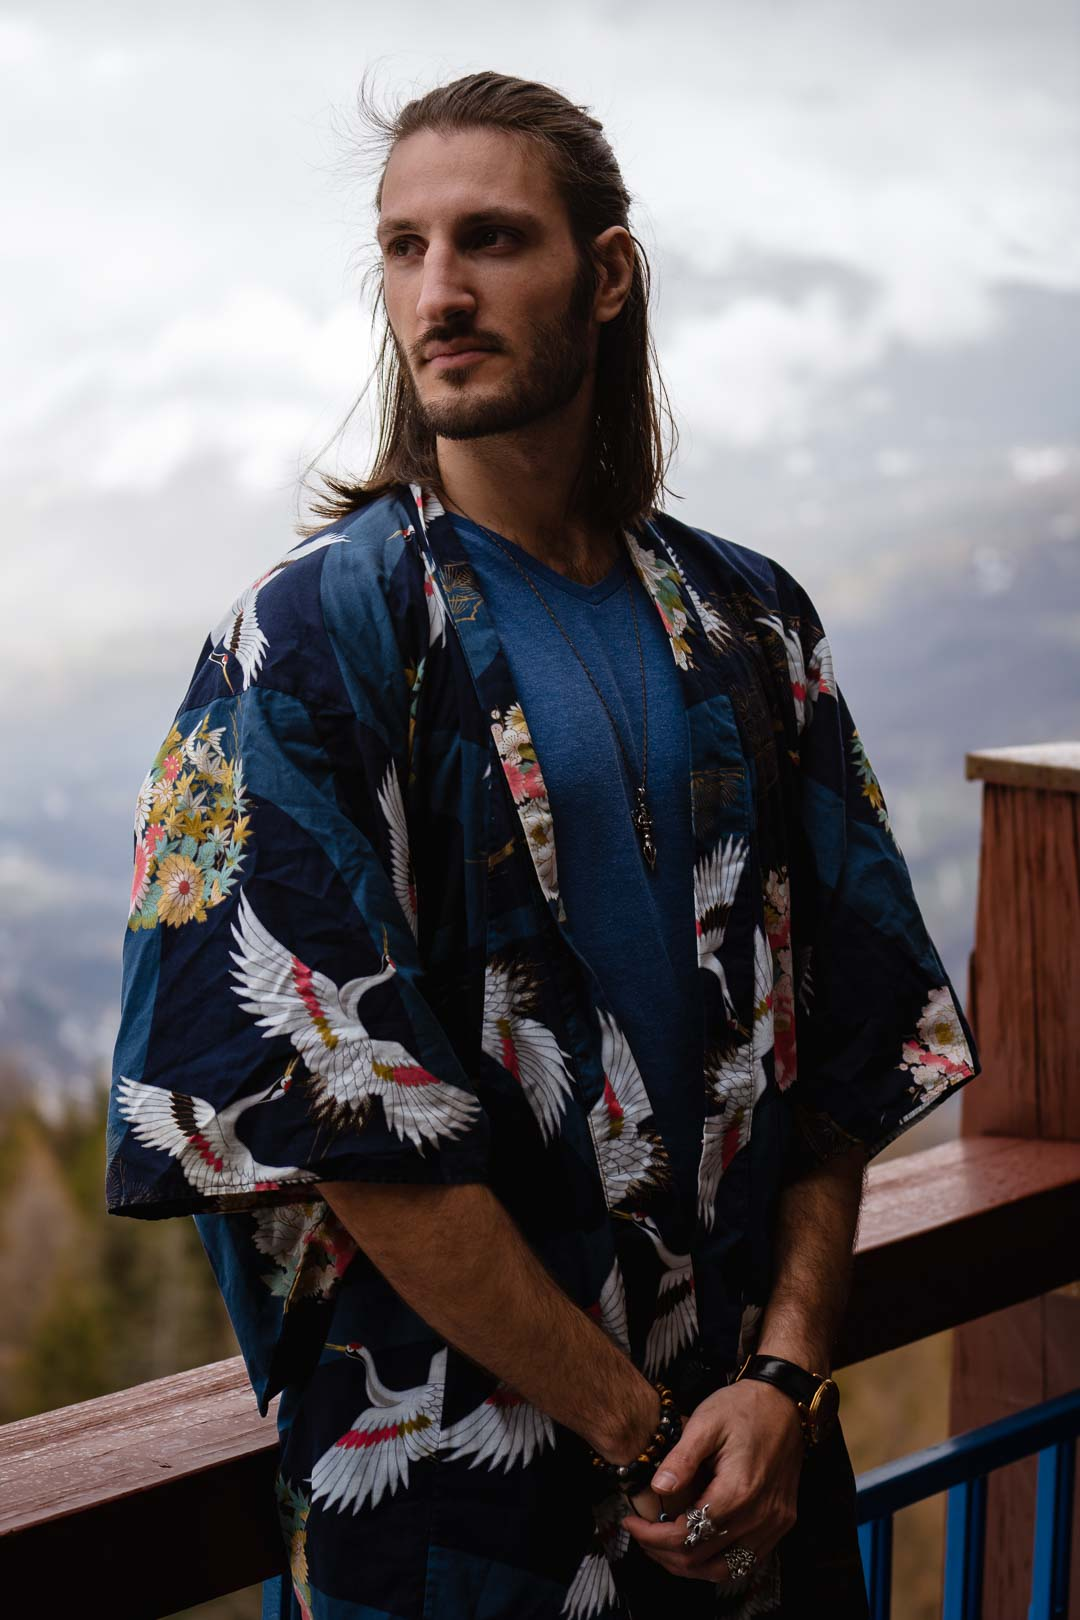 Man with long hair wearing a kimono in front of a snowy landscape